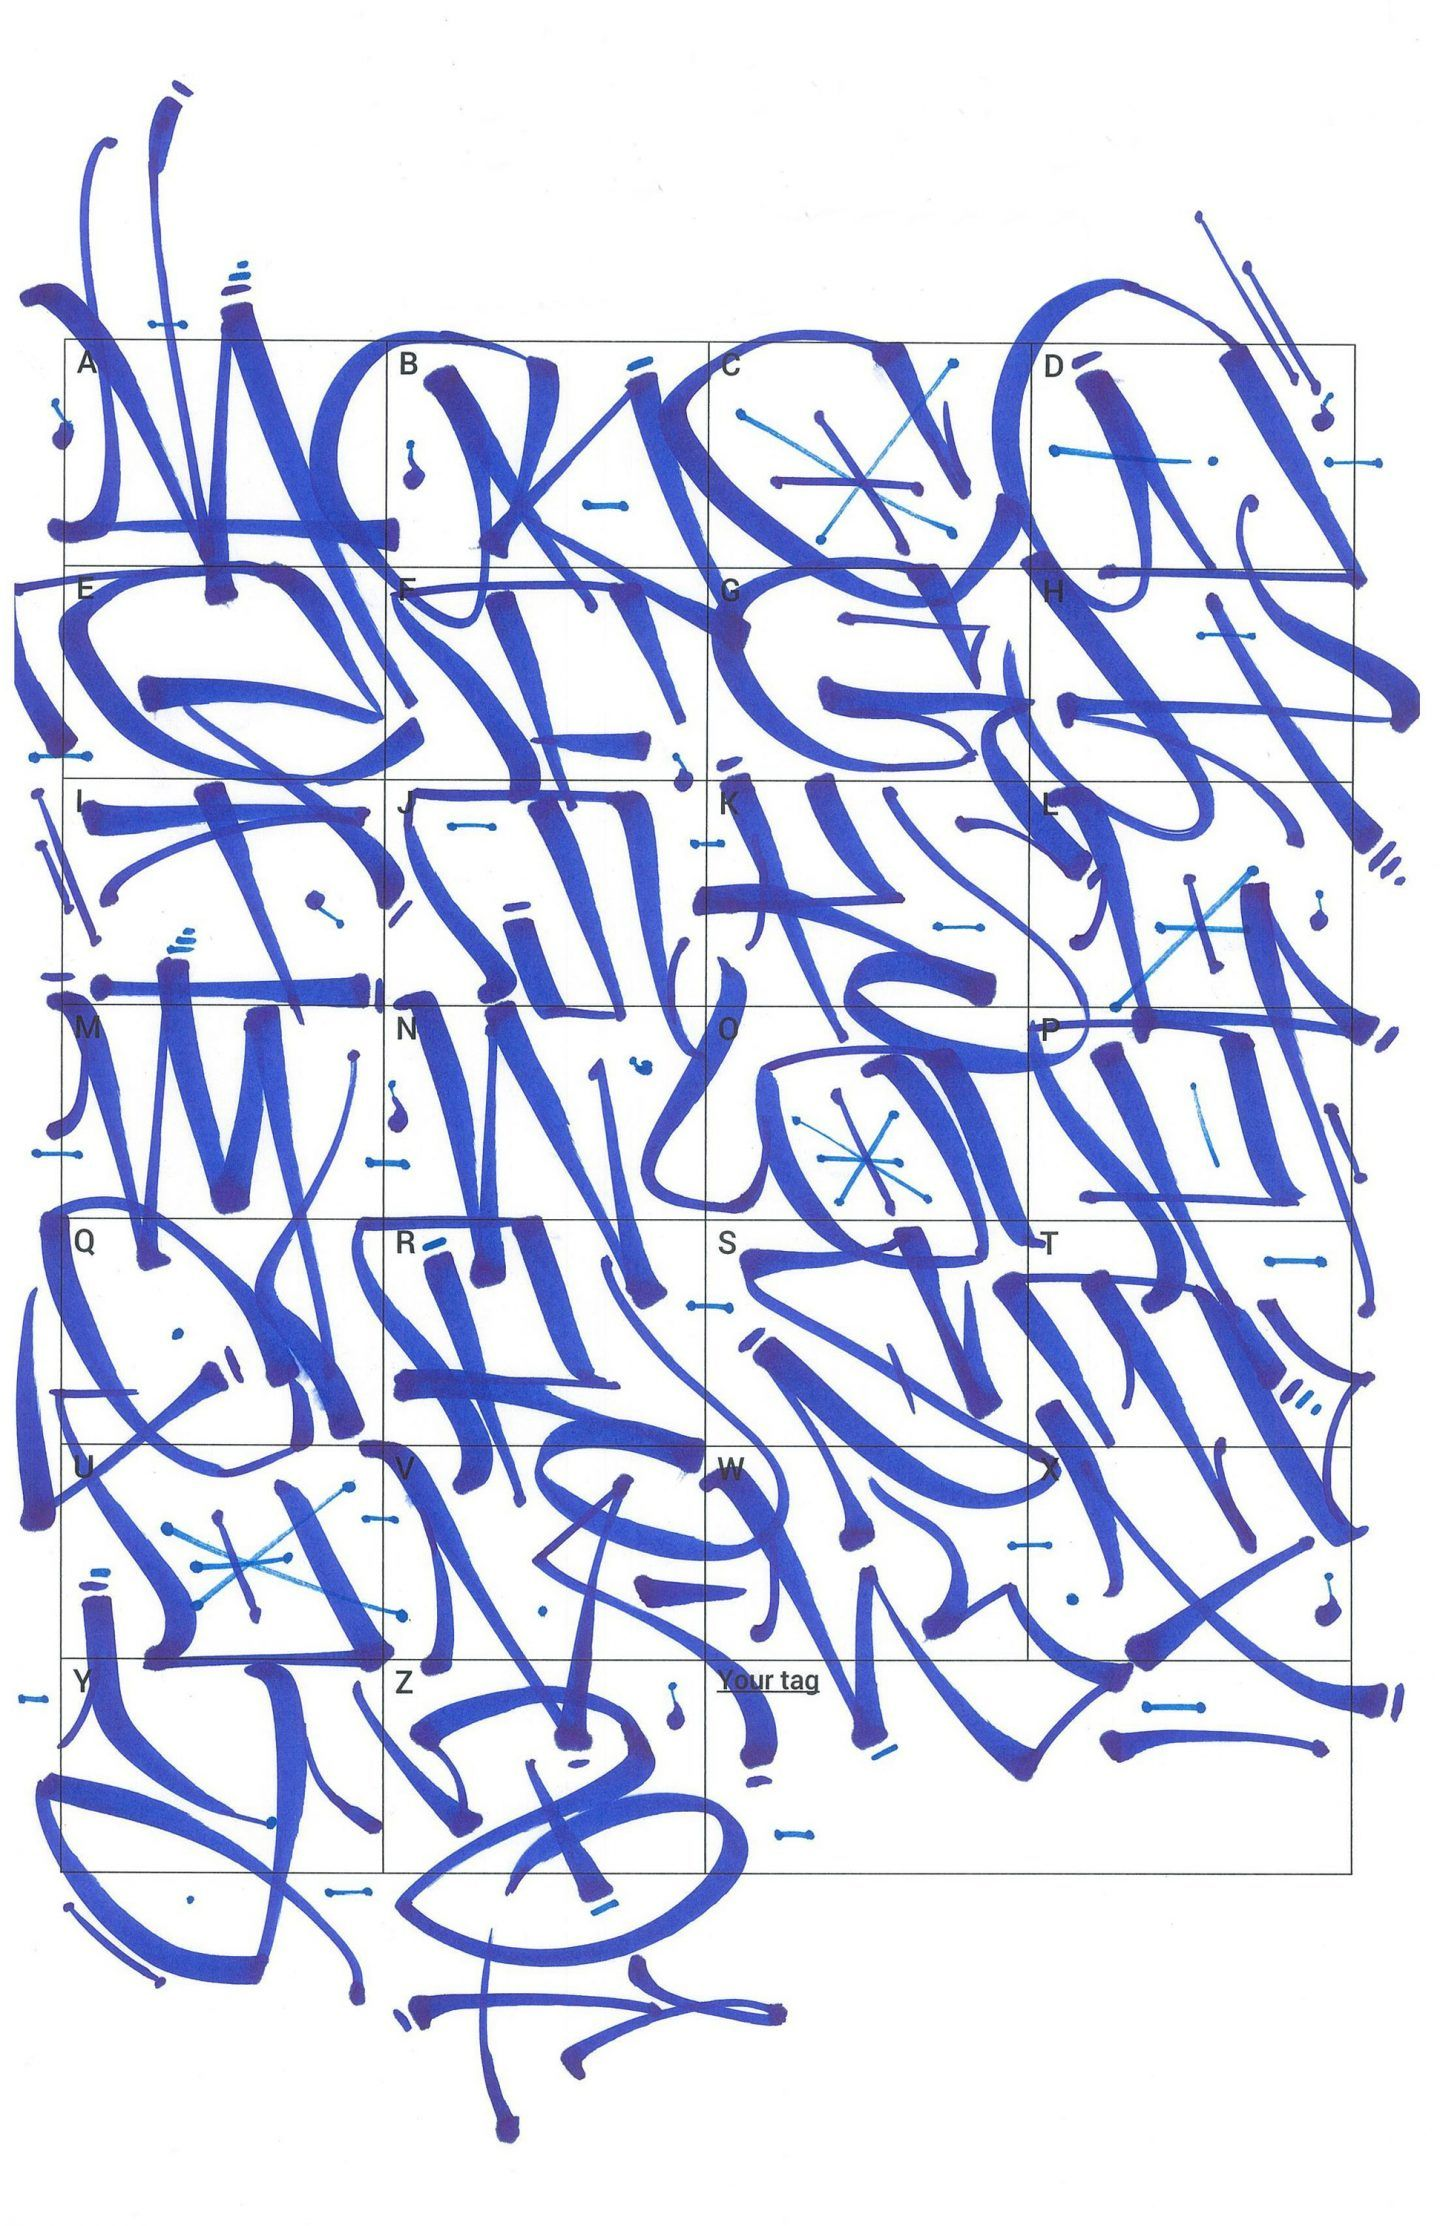 Graffiti Letters 61 Graffiti Artists Share Their Styles Tipos